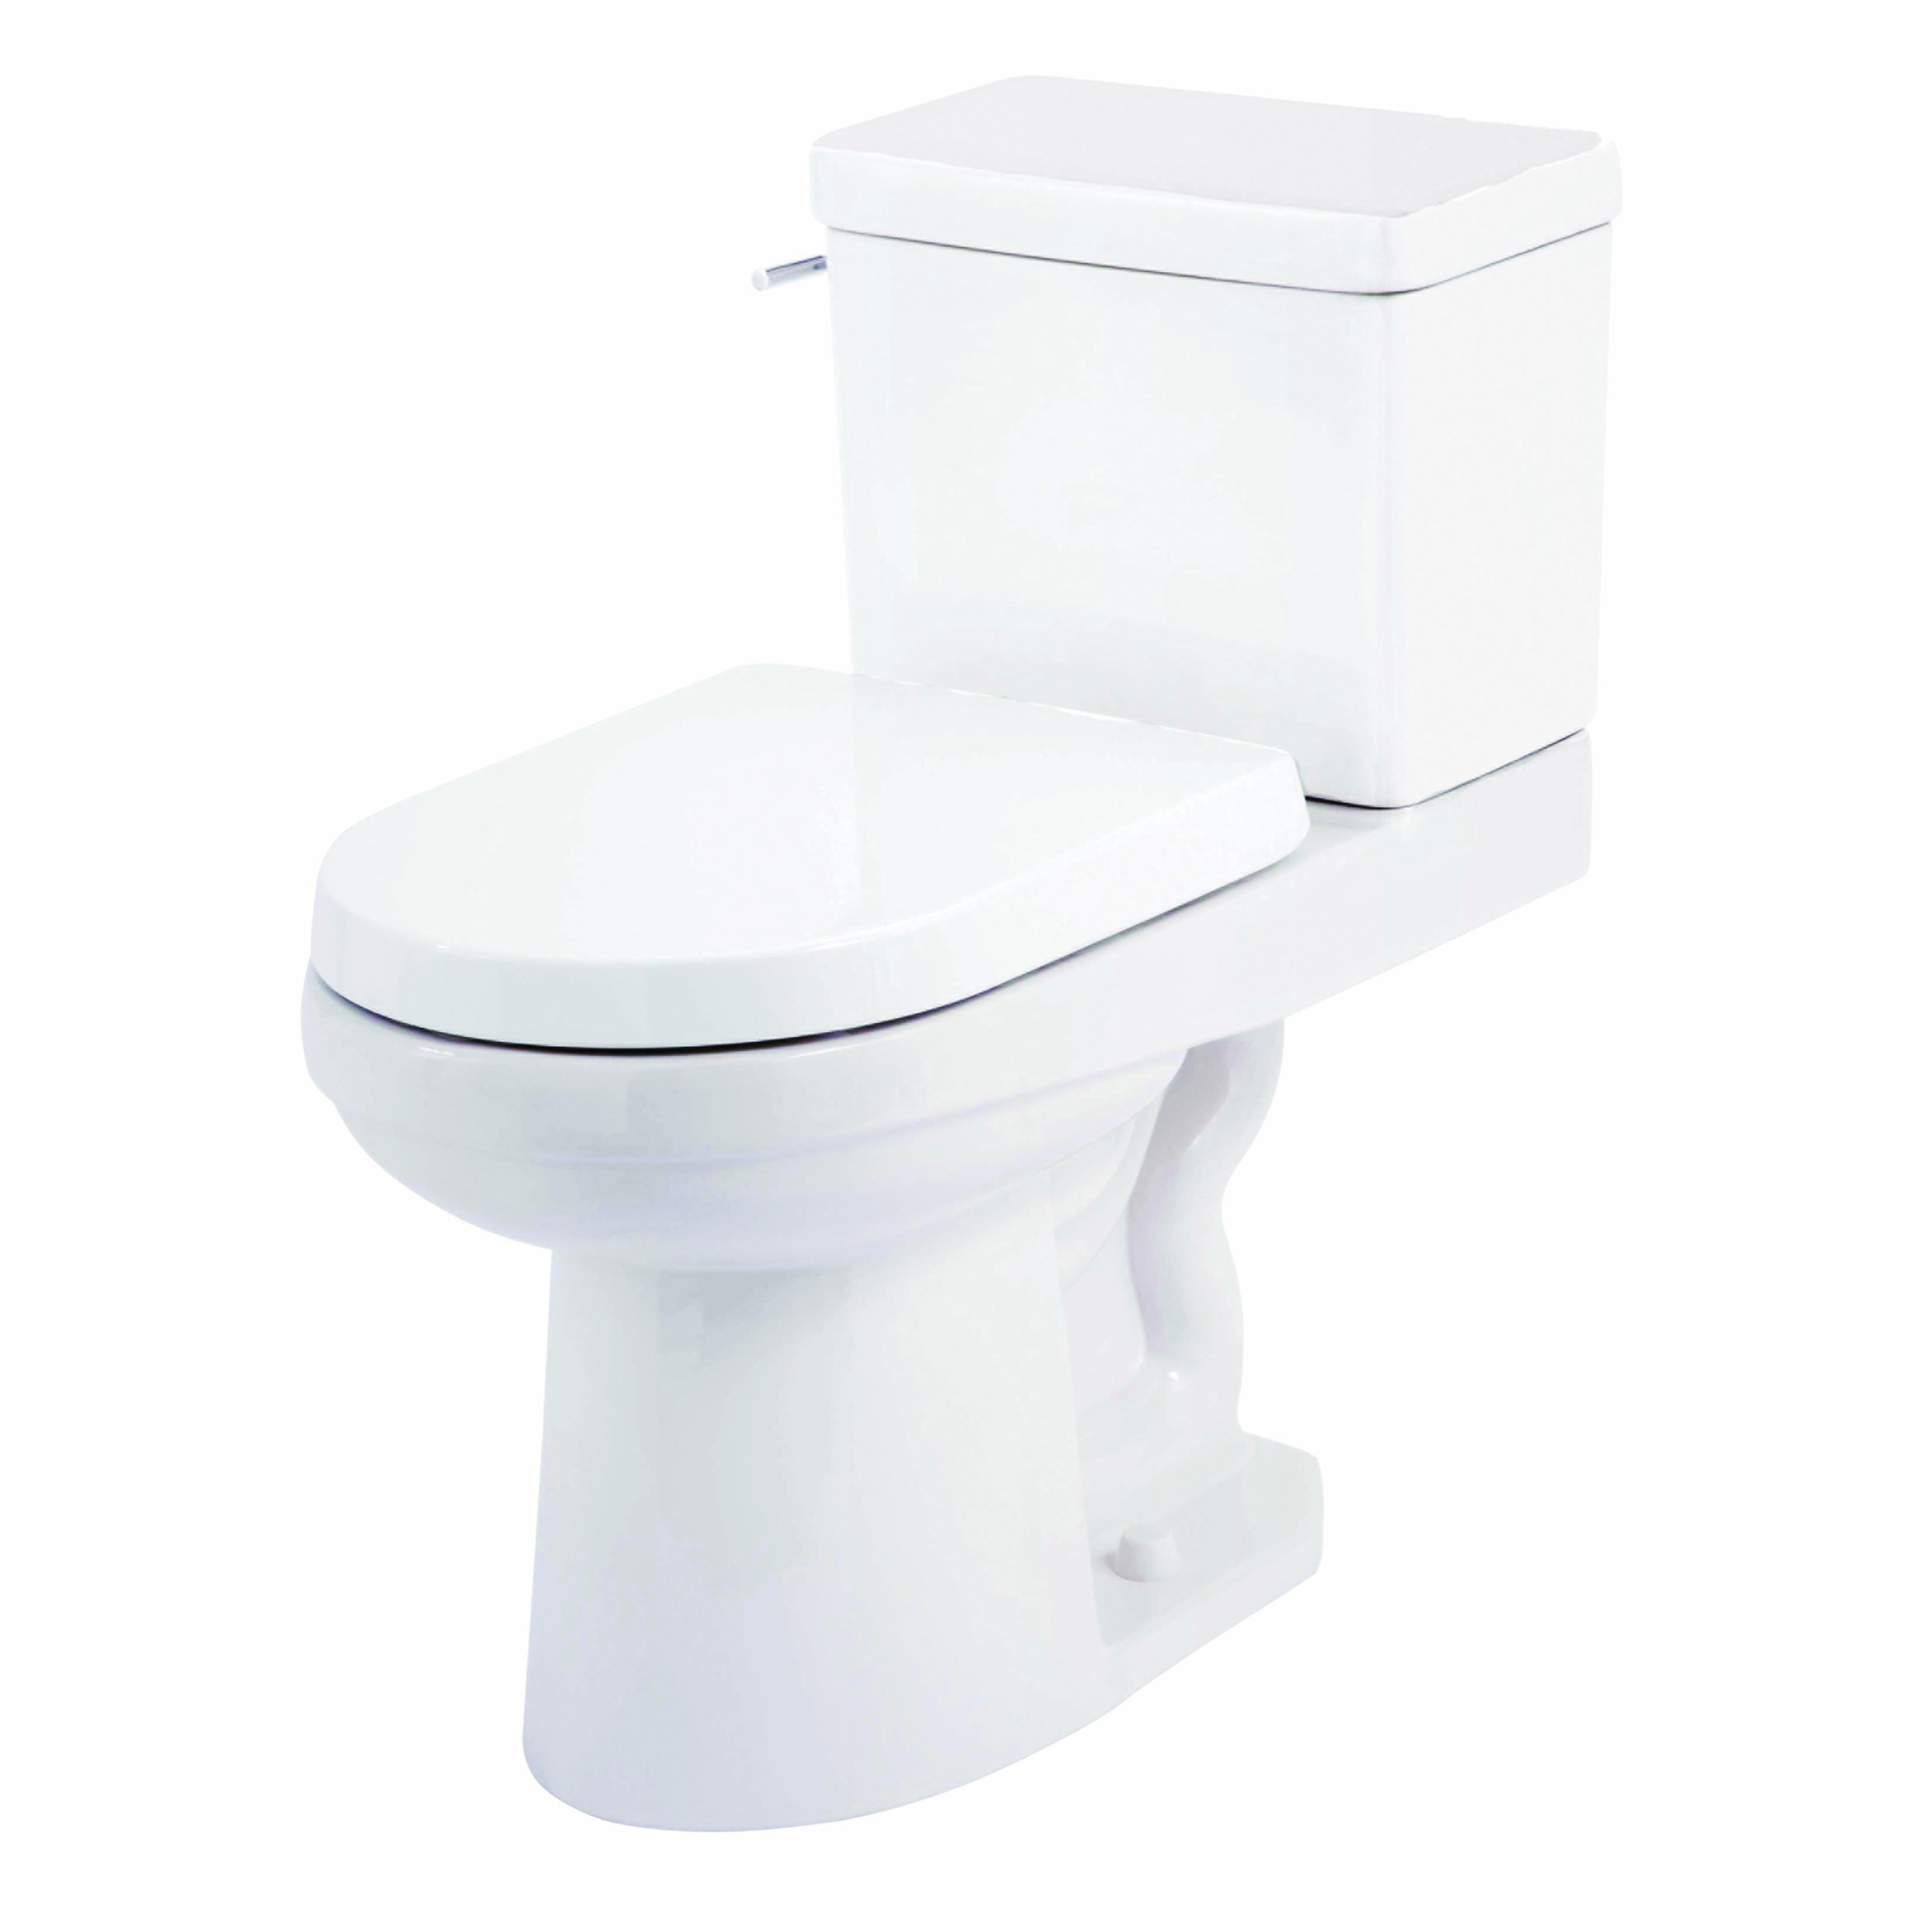 Fixtures Accessories Toilets Bidets Toilet Bowl Only Psc